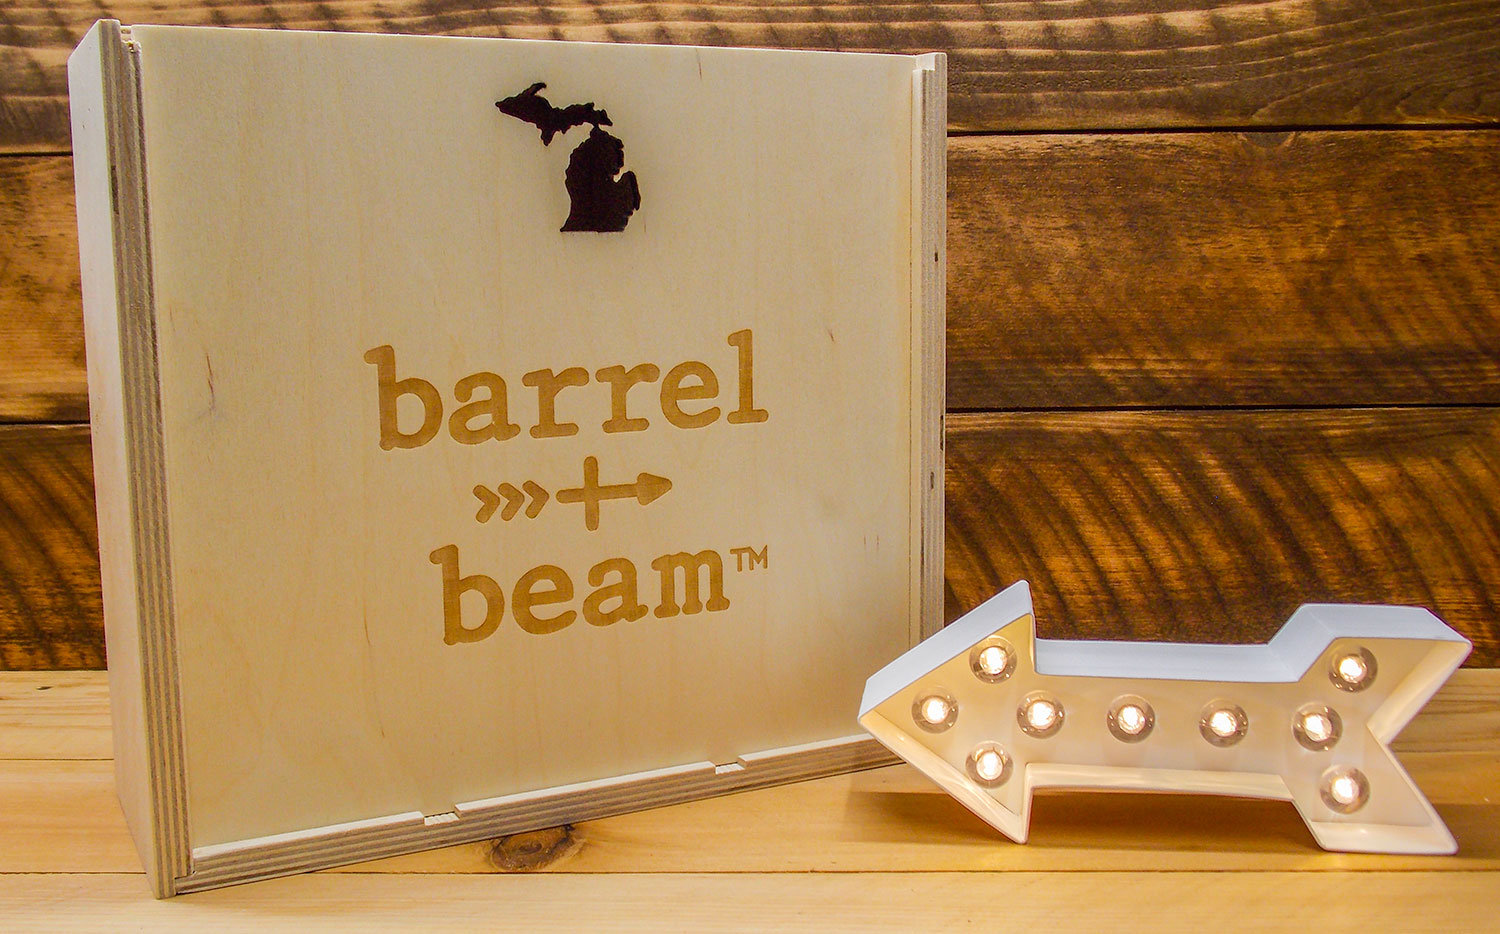 Barrel and Beam gift box with logo